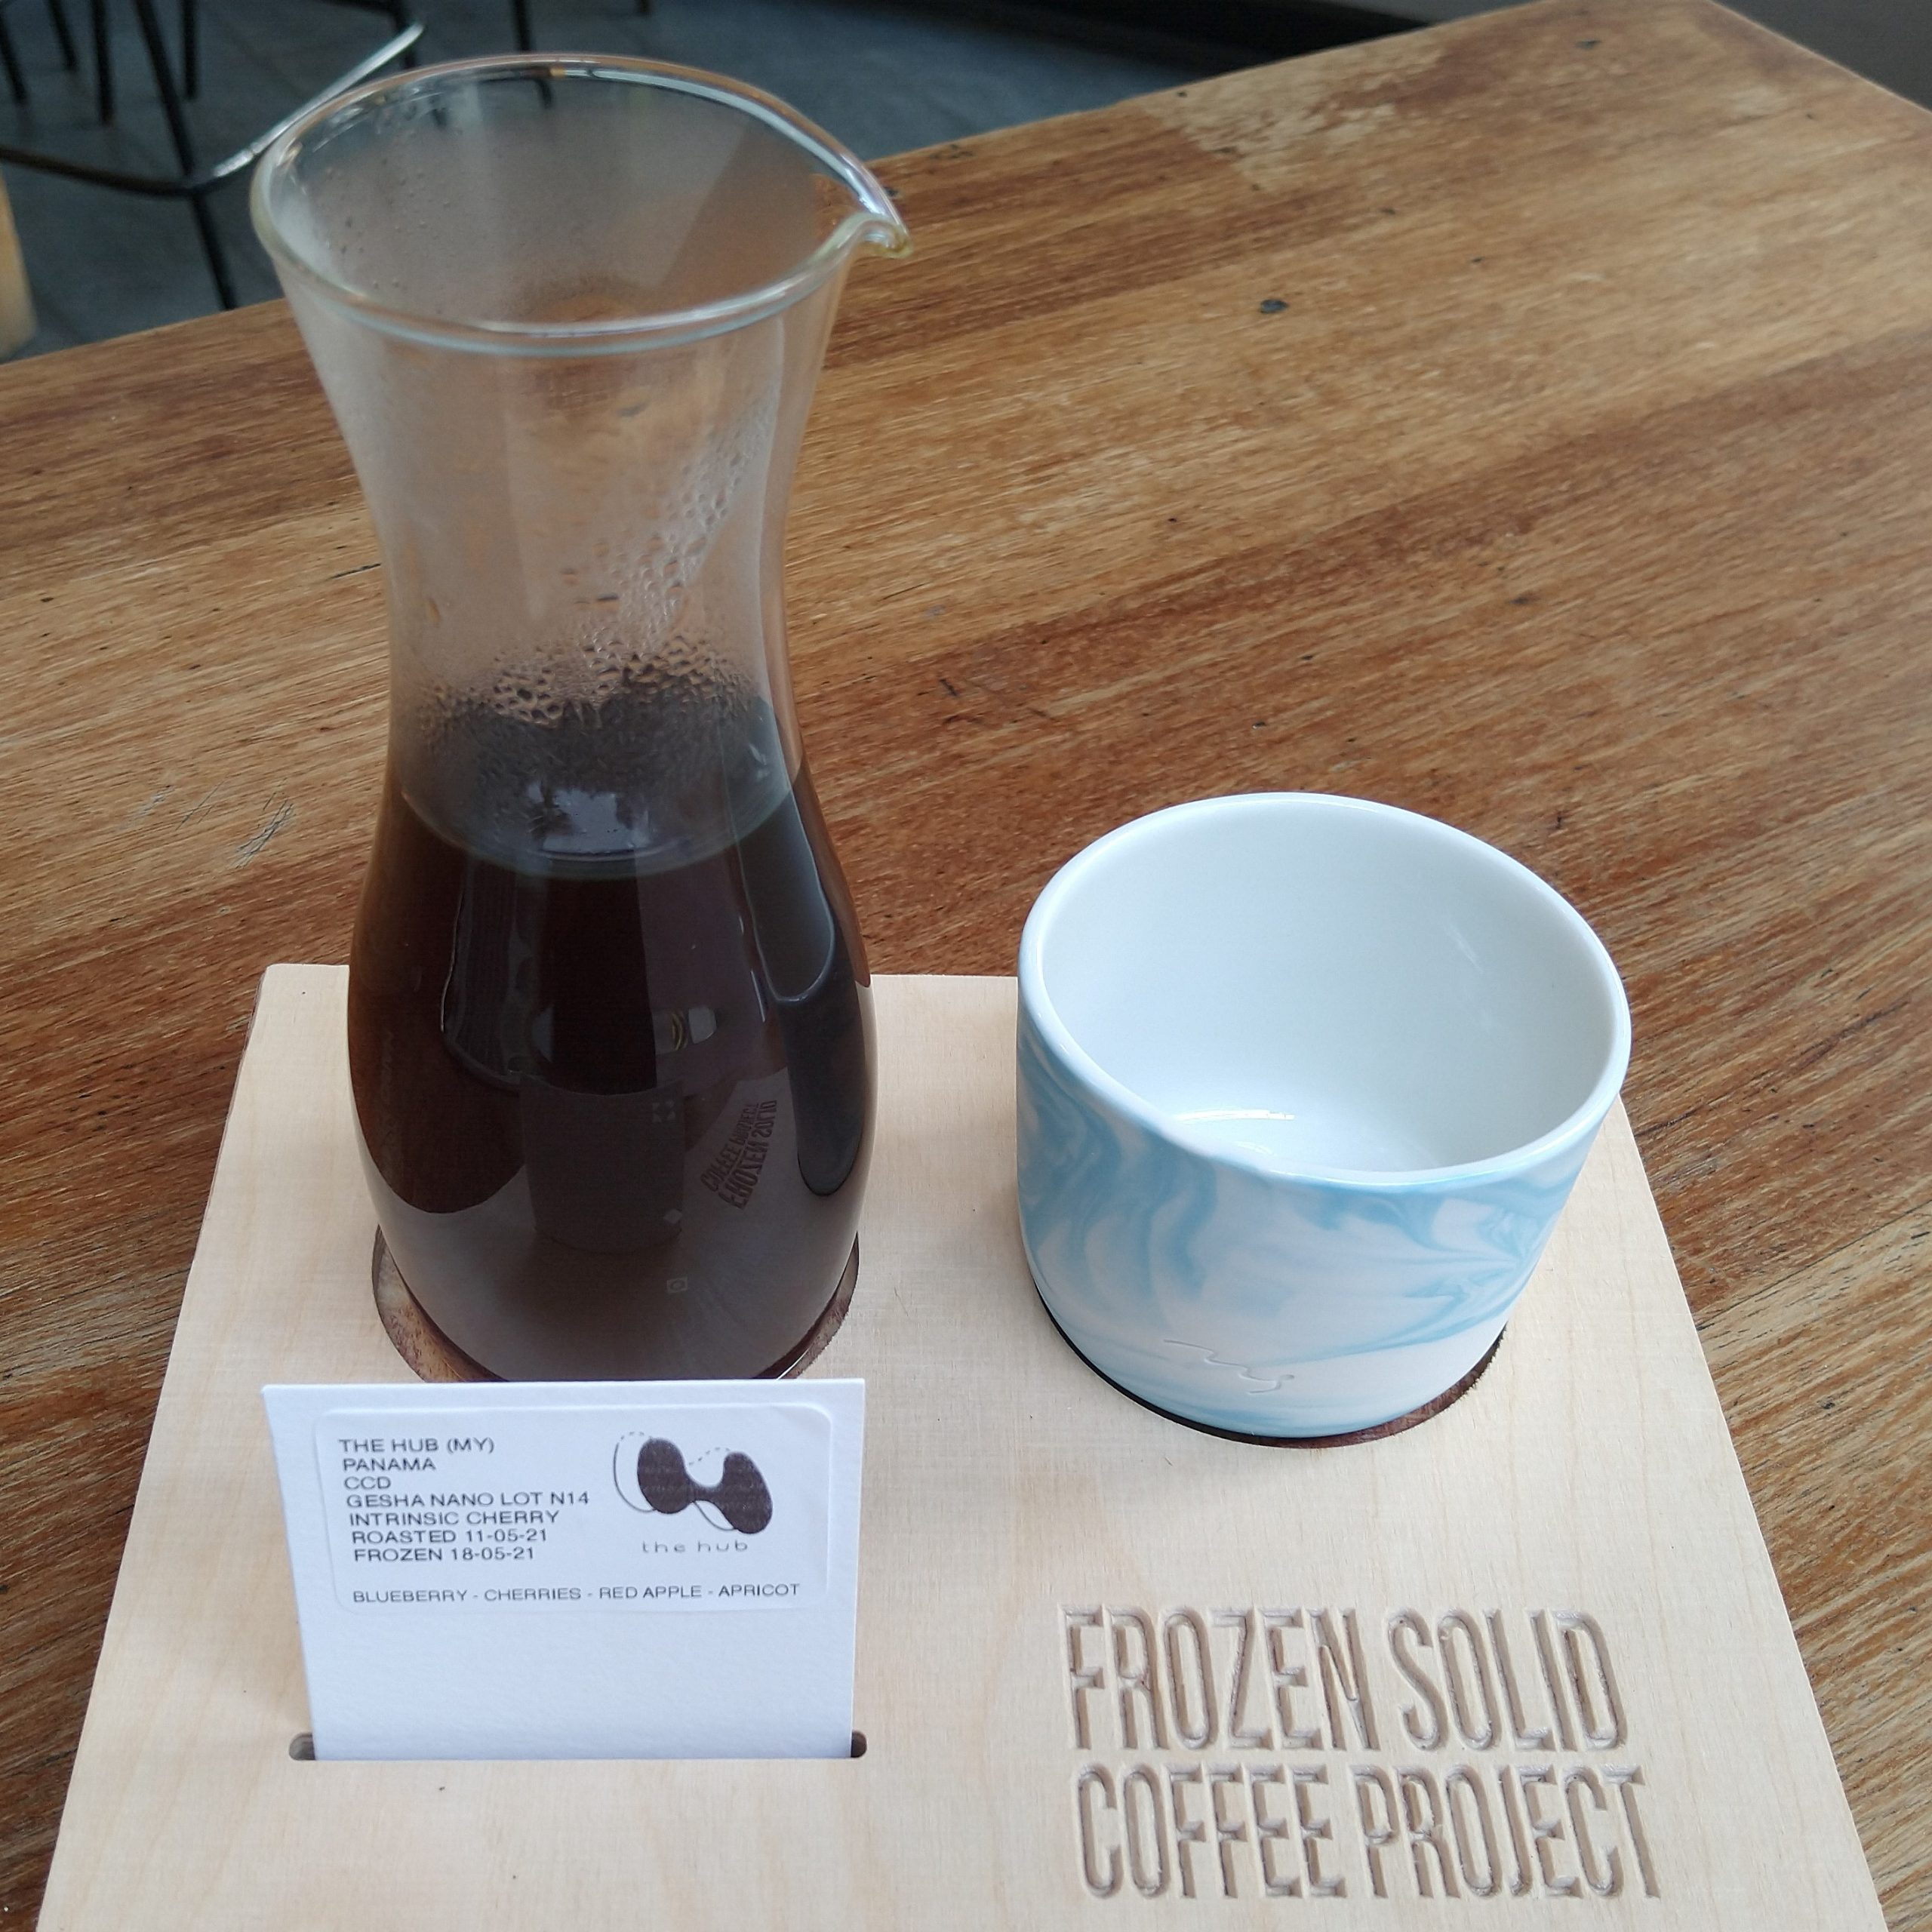 My coffee, the Nano Lot N14, a Gesha grown by Creativa Coffee District in Panama, roasted by The Hub in Malaysia and served in a carafe, with a lovely ceramic cup on the side, all presented on a wooden tray, part of the Frozen Solid Coffee Project at Tilt in Birmingham.